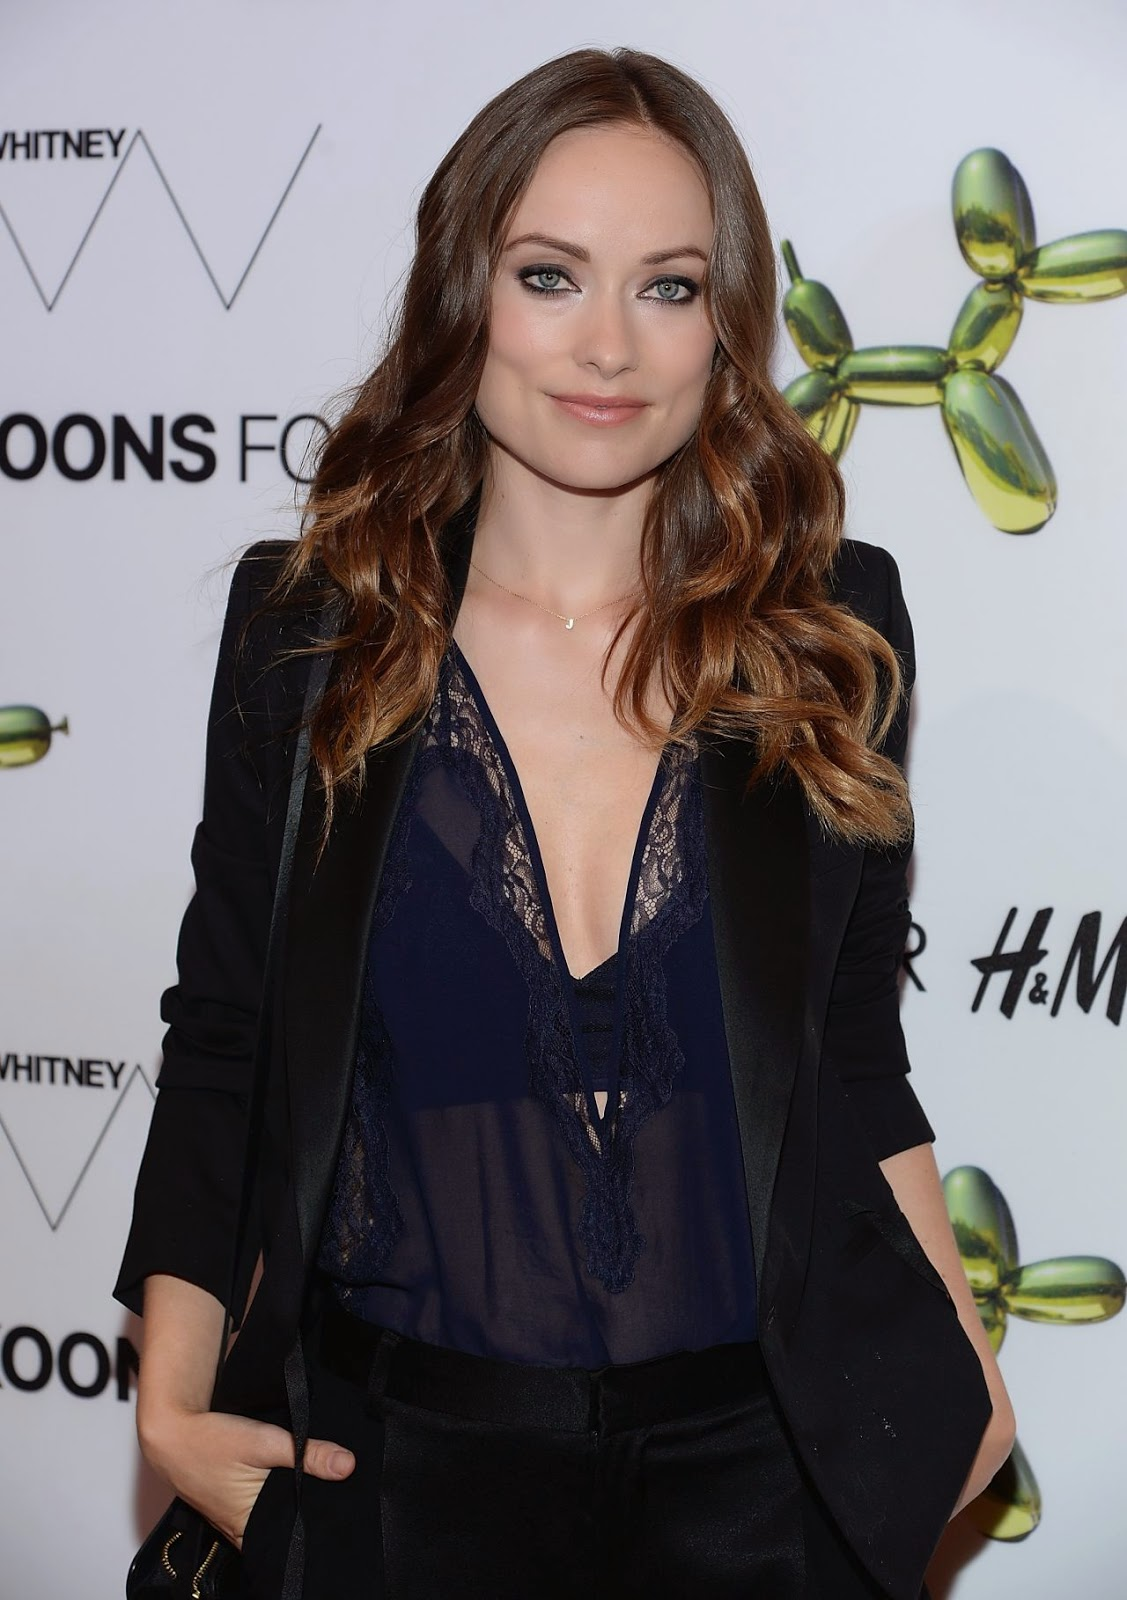 Olivia Wilde attends the H&M Fifth Avenue Flagship Store Launch in NYC